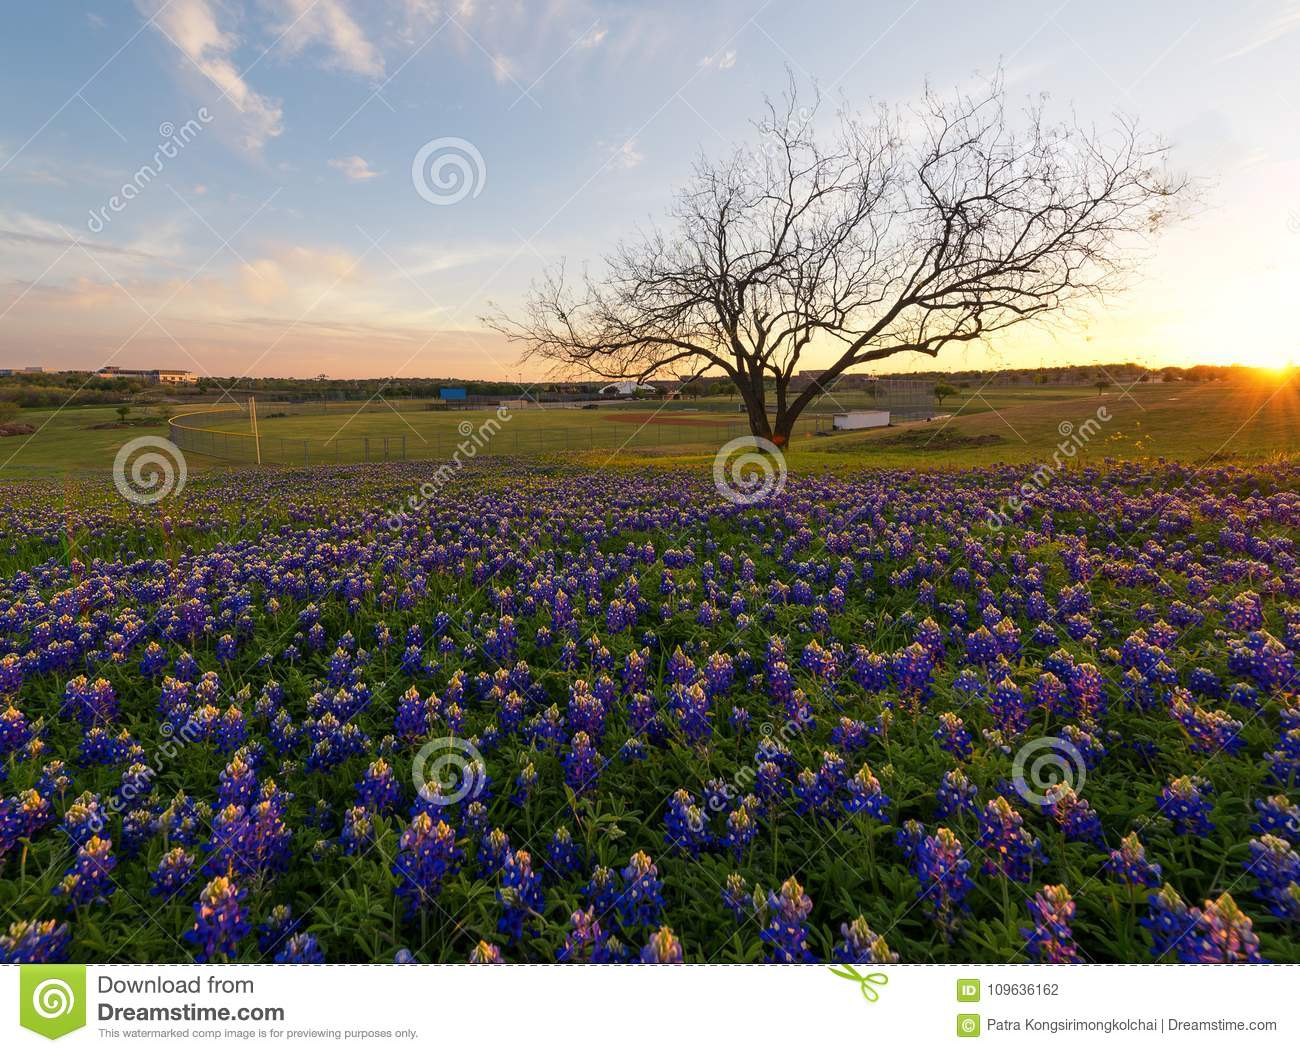 Bluebonnet Flowers Blooming In Irving Texas Stock Photo Image Of